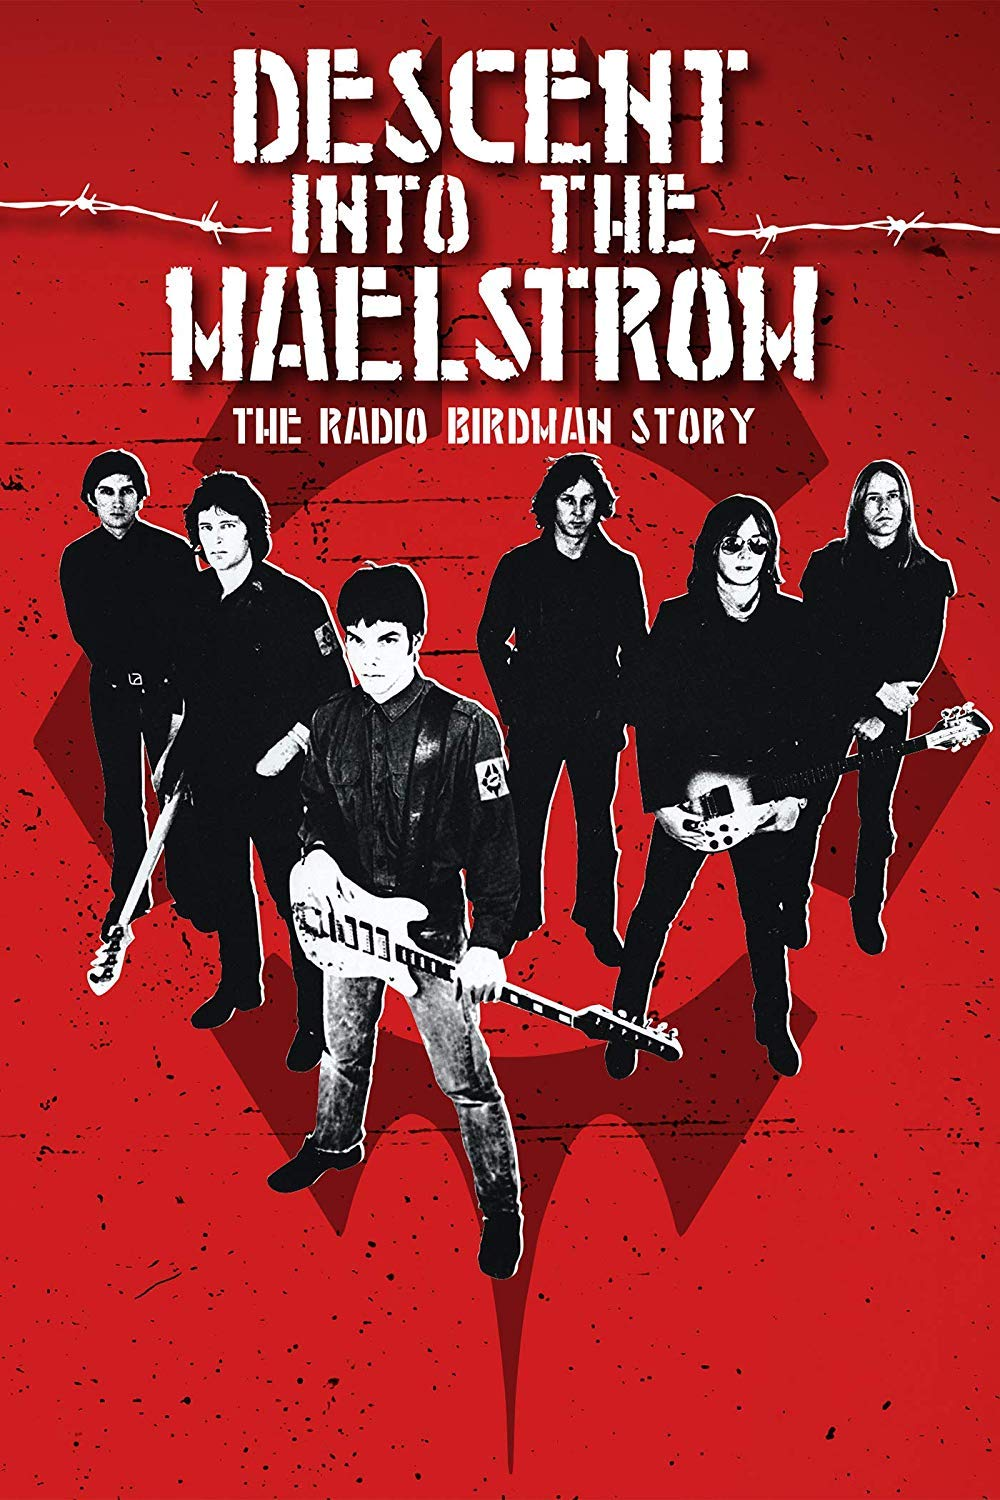 Descent Into the Maelstrom: The Untrold Story of Radio Birdman (2017) documental